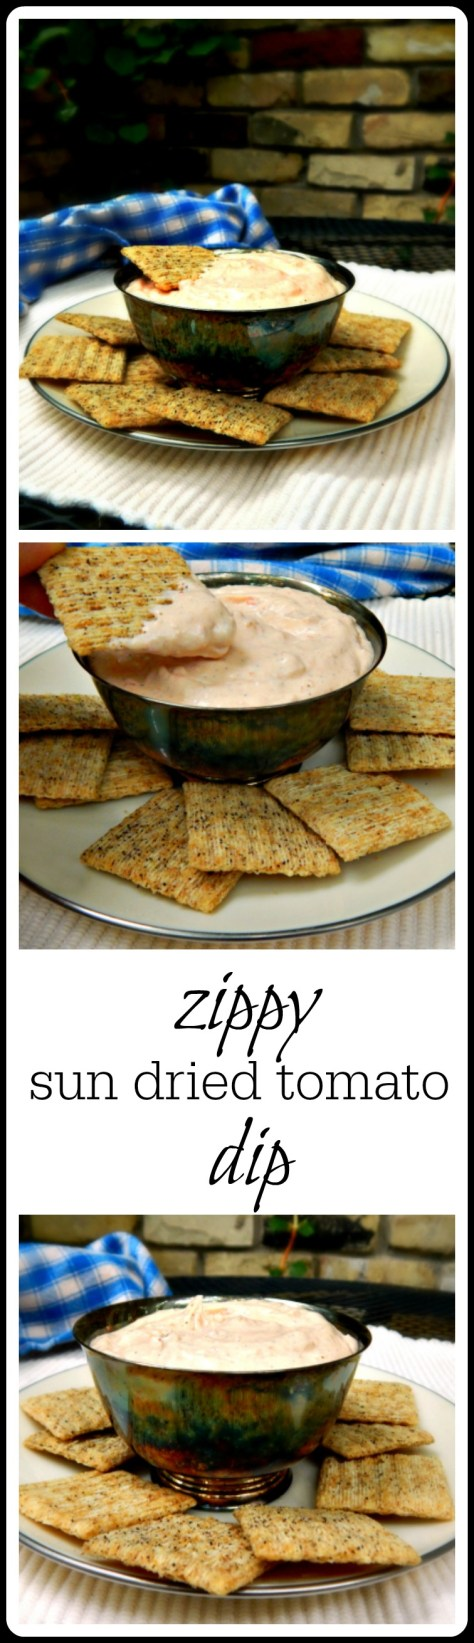 Sun Dried Tomato Dip - so simple and so good!